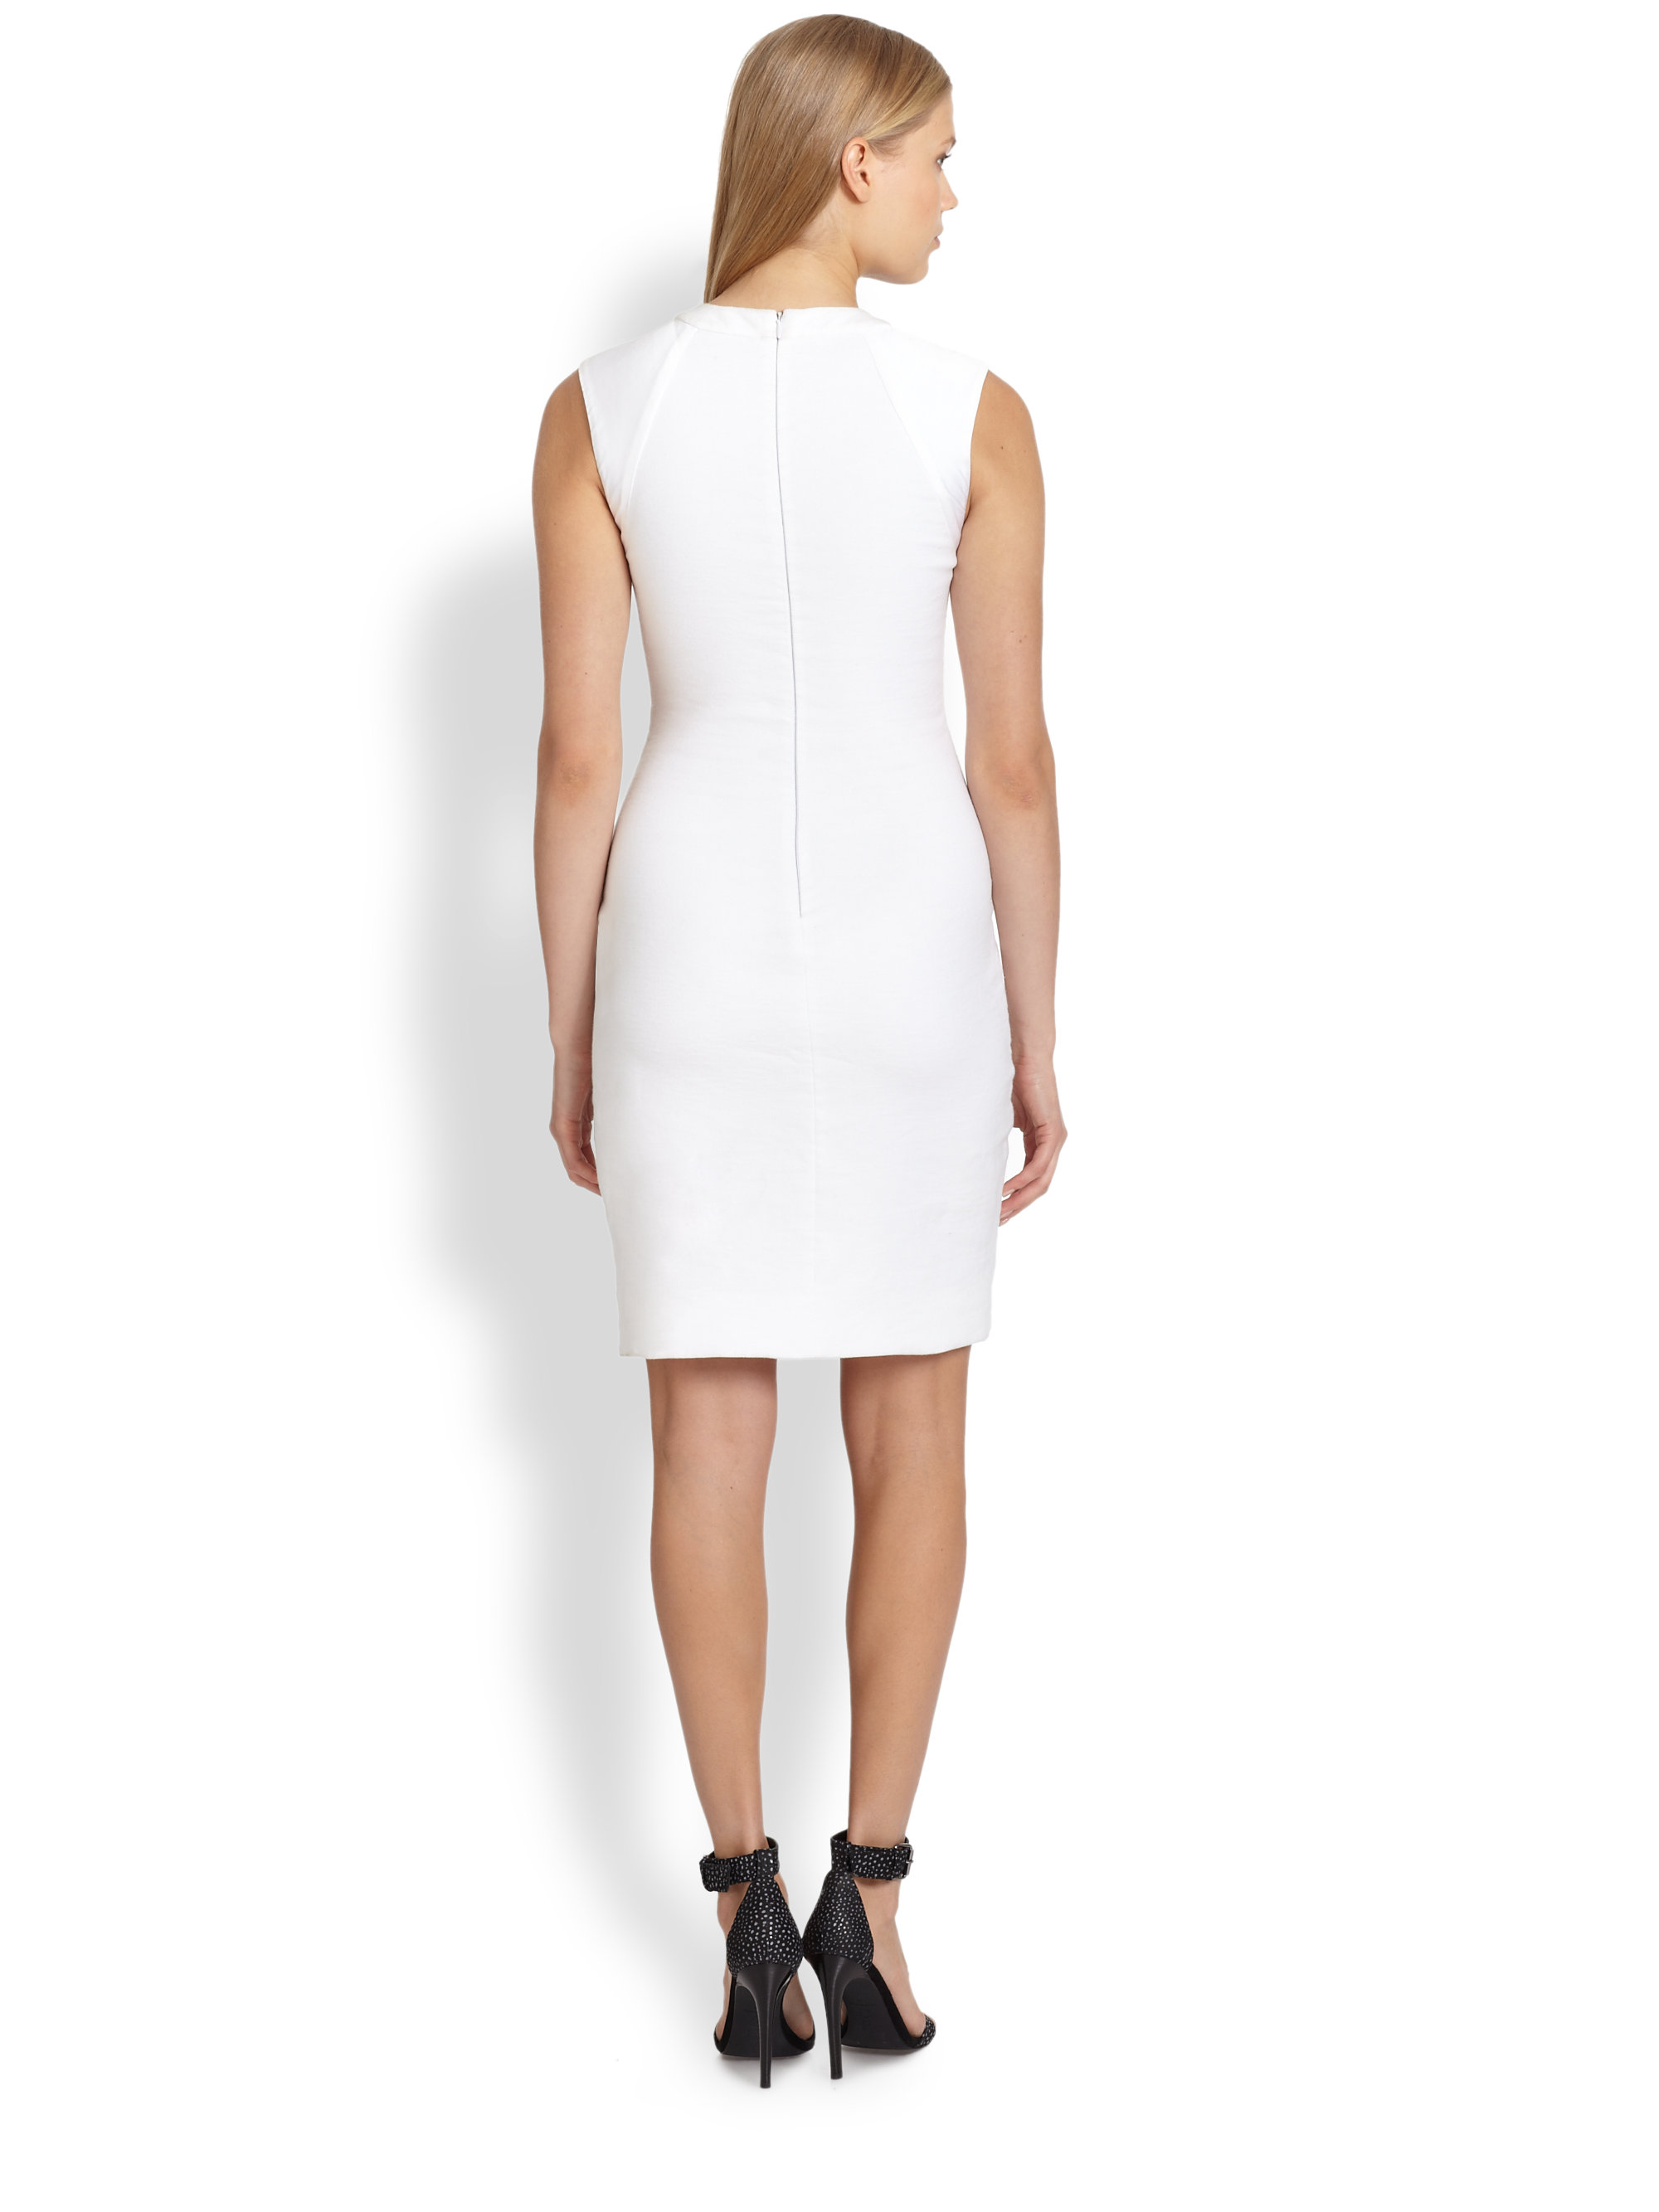 8db2b859 Lyst - L'Agence Satintrimmed Ruched Stretch Cotton Linen Dress in White